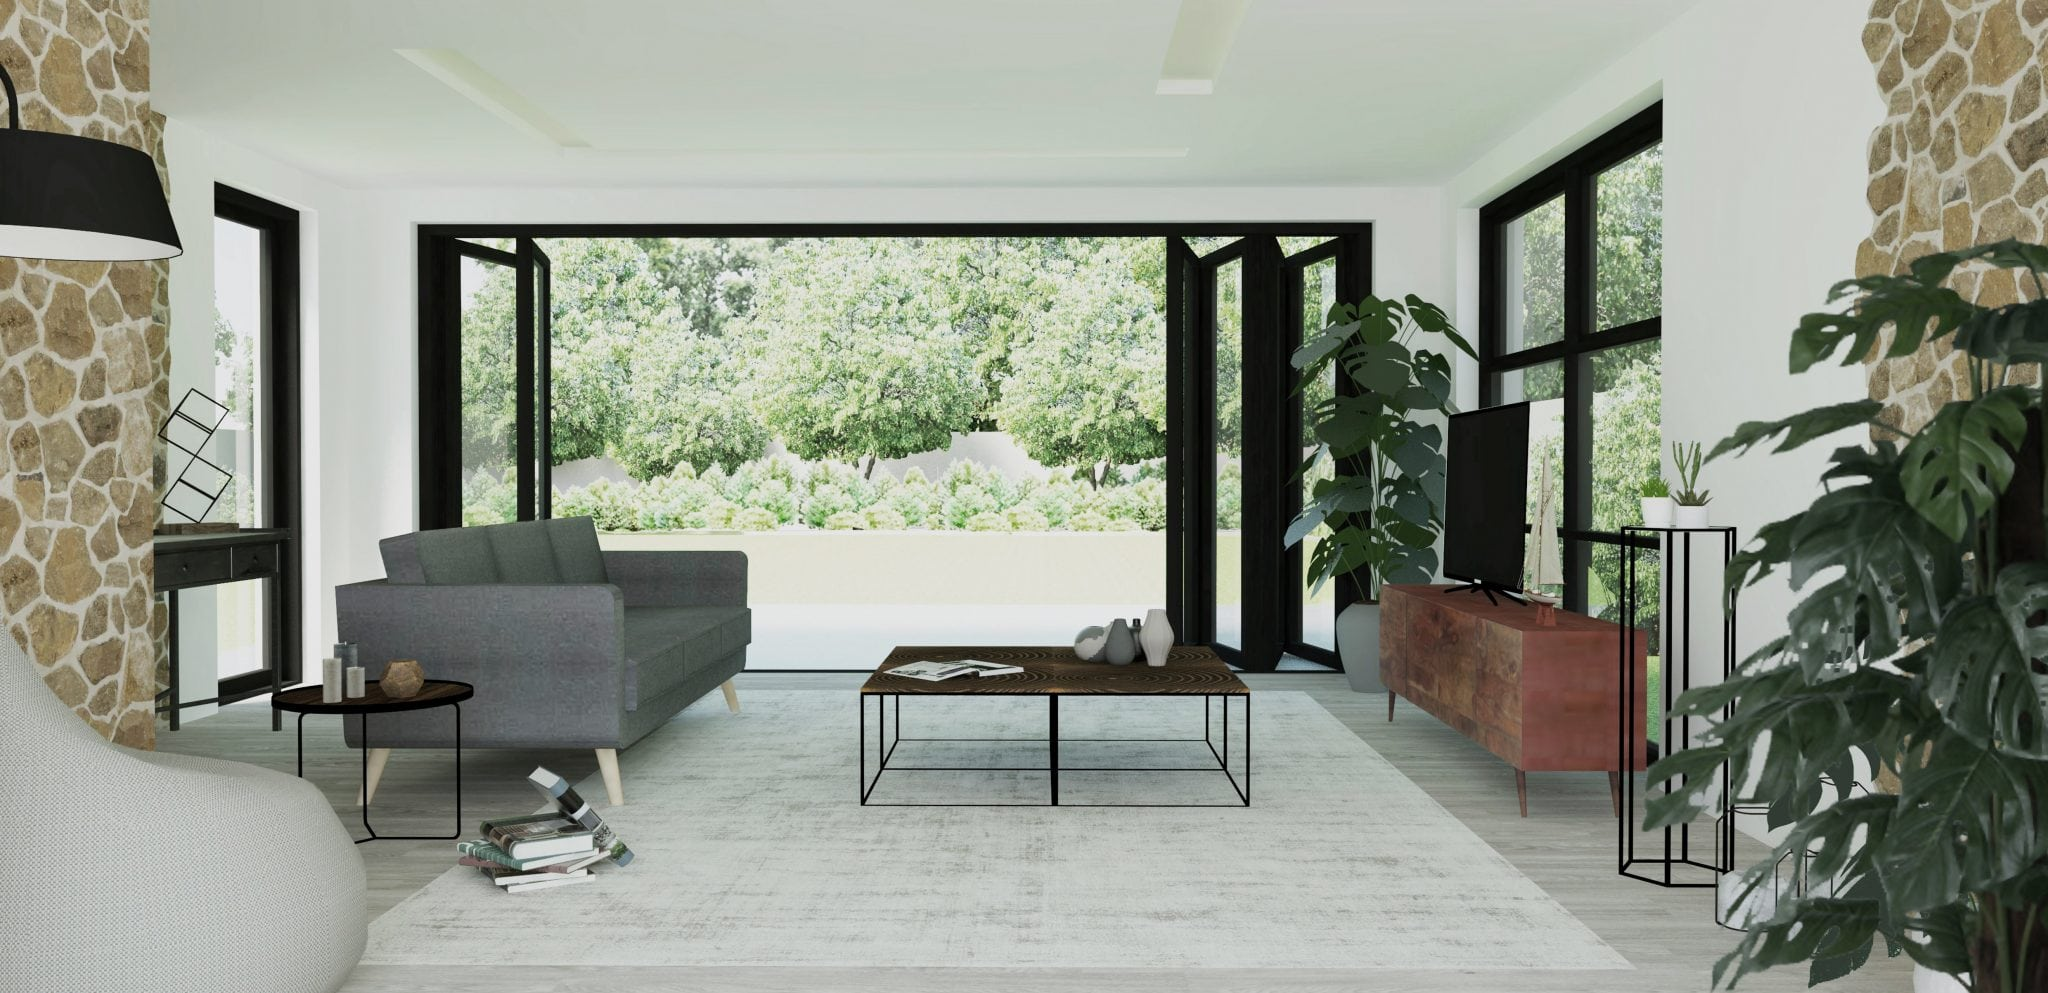 The Expert Architects In London Extensions